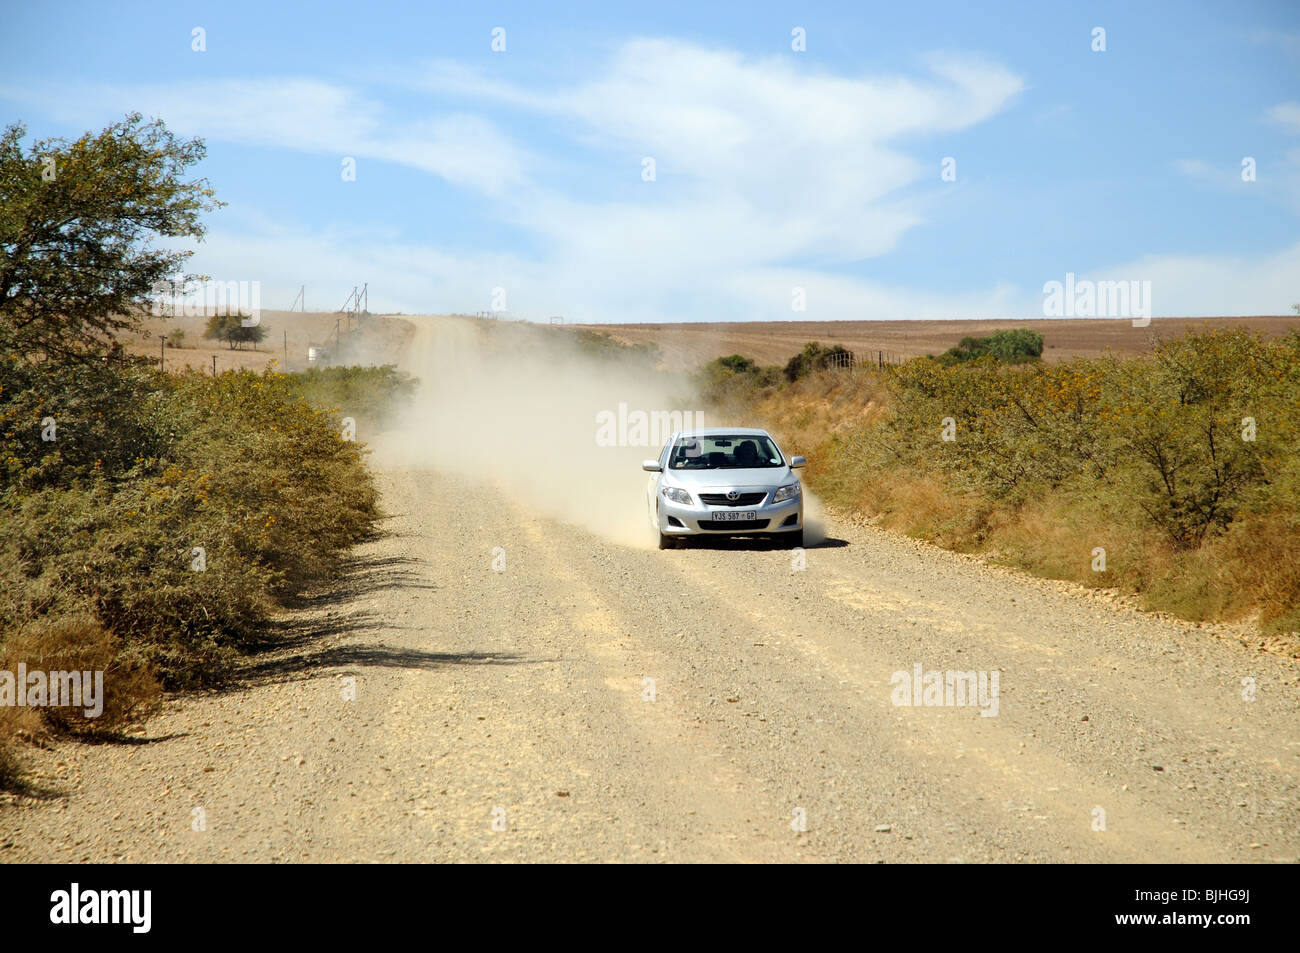 Motoring along the Garden Route. One of the may gravel roads encountered in southern Africa Toyota is heading toward - Stock Image